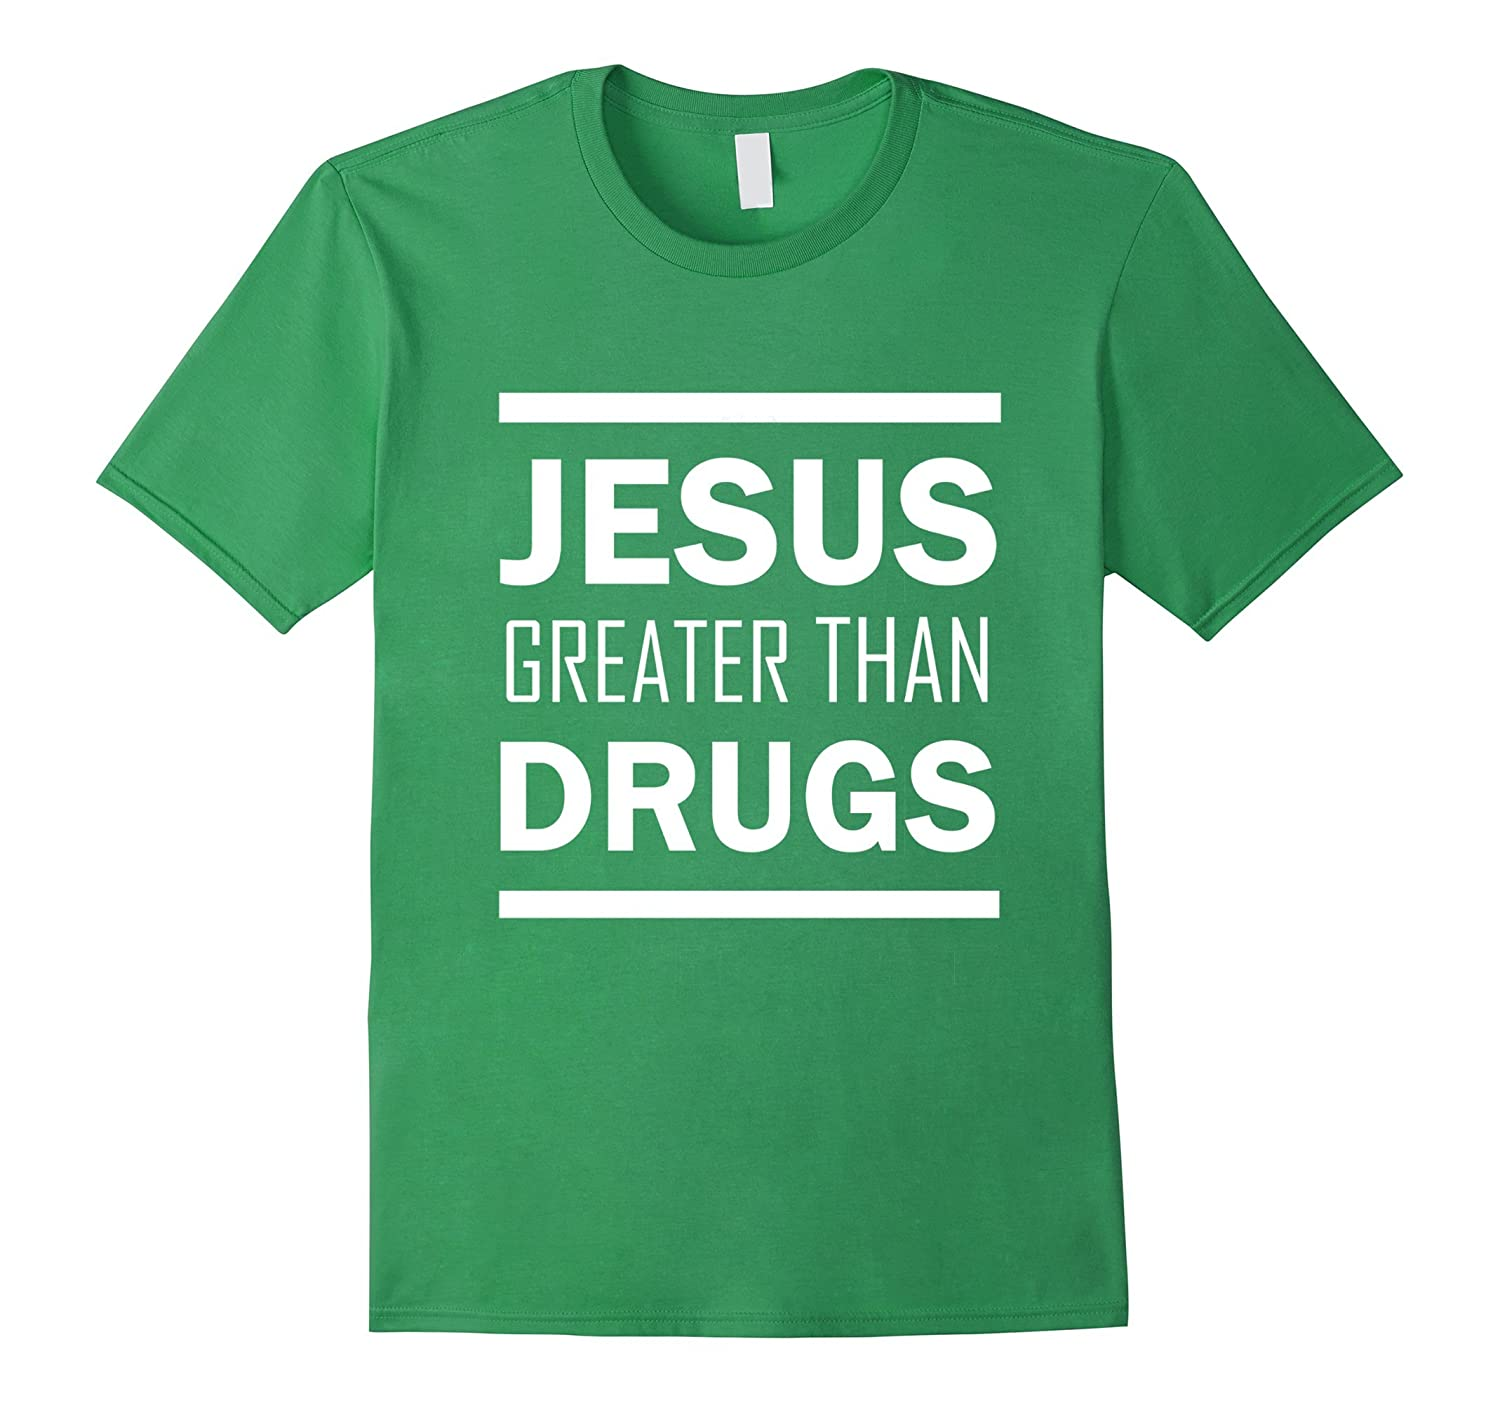 Jesus Greater Than Drugs T Shirt Goatstee